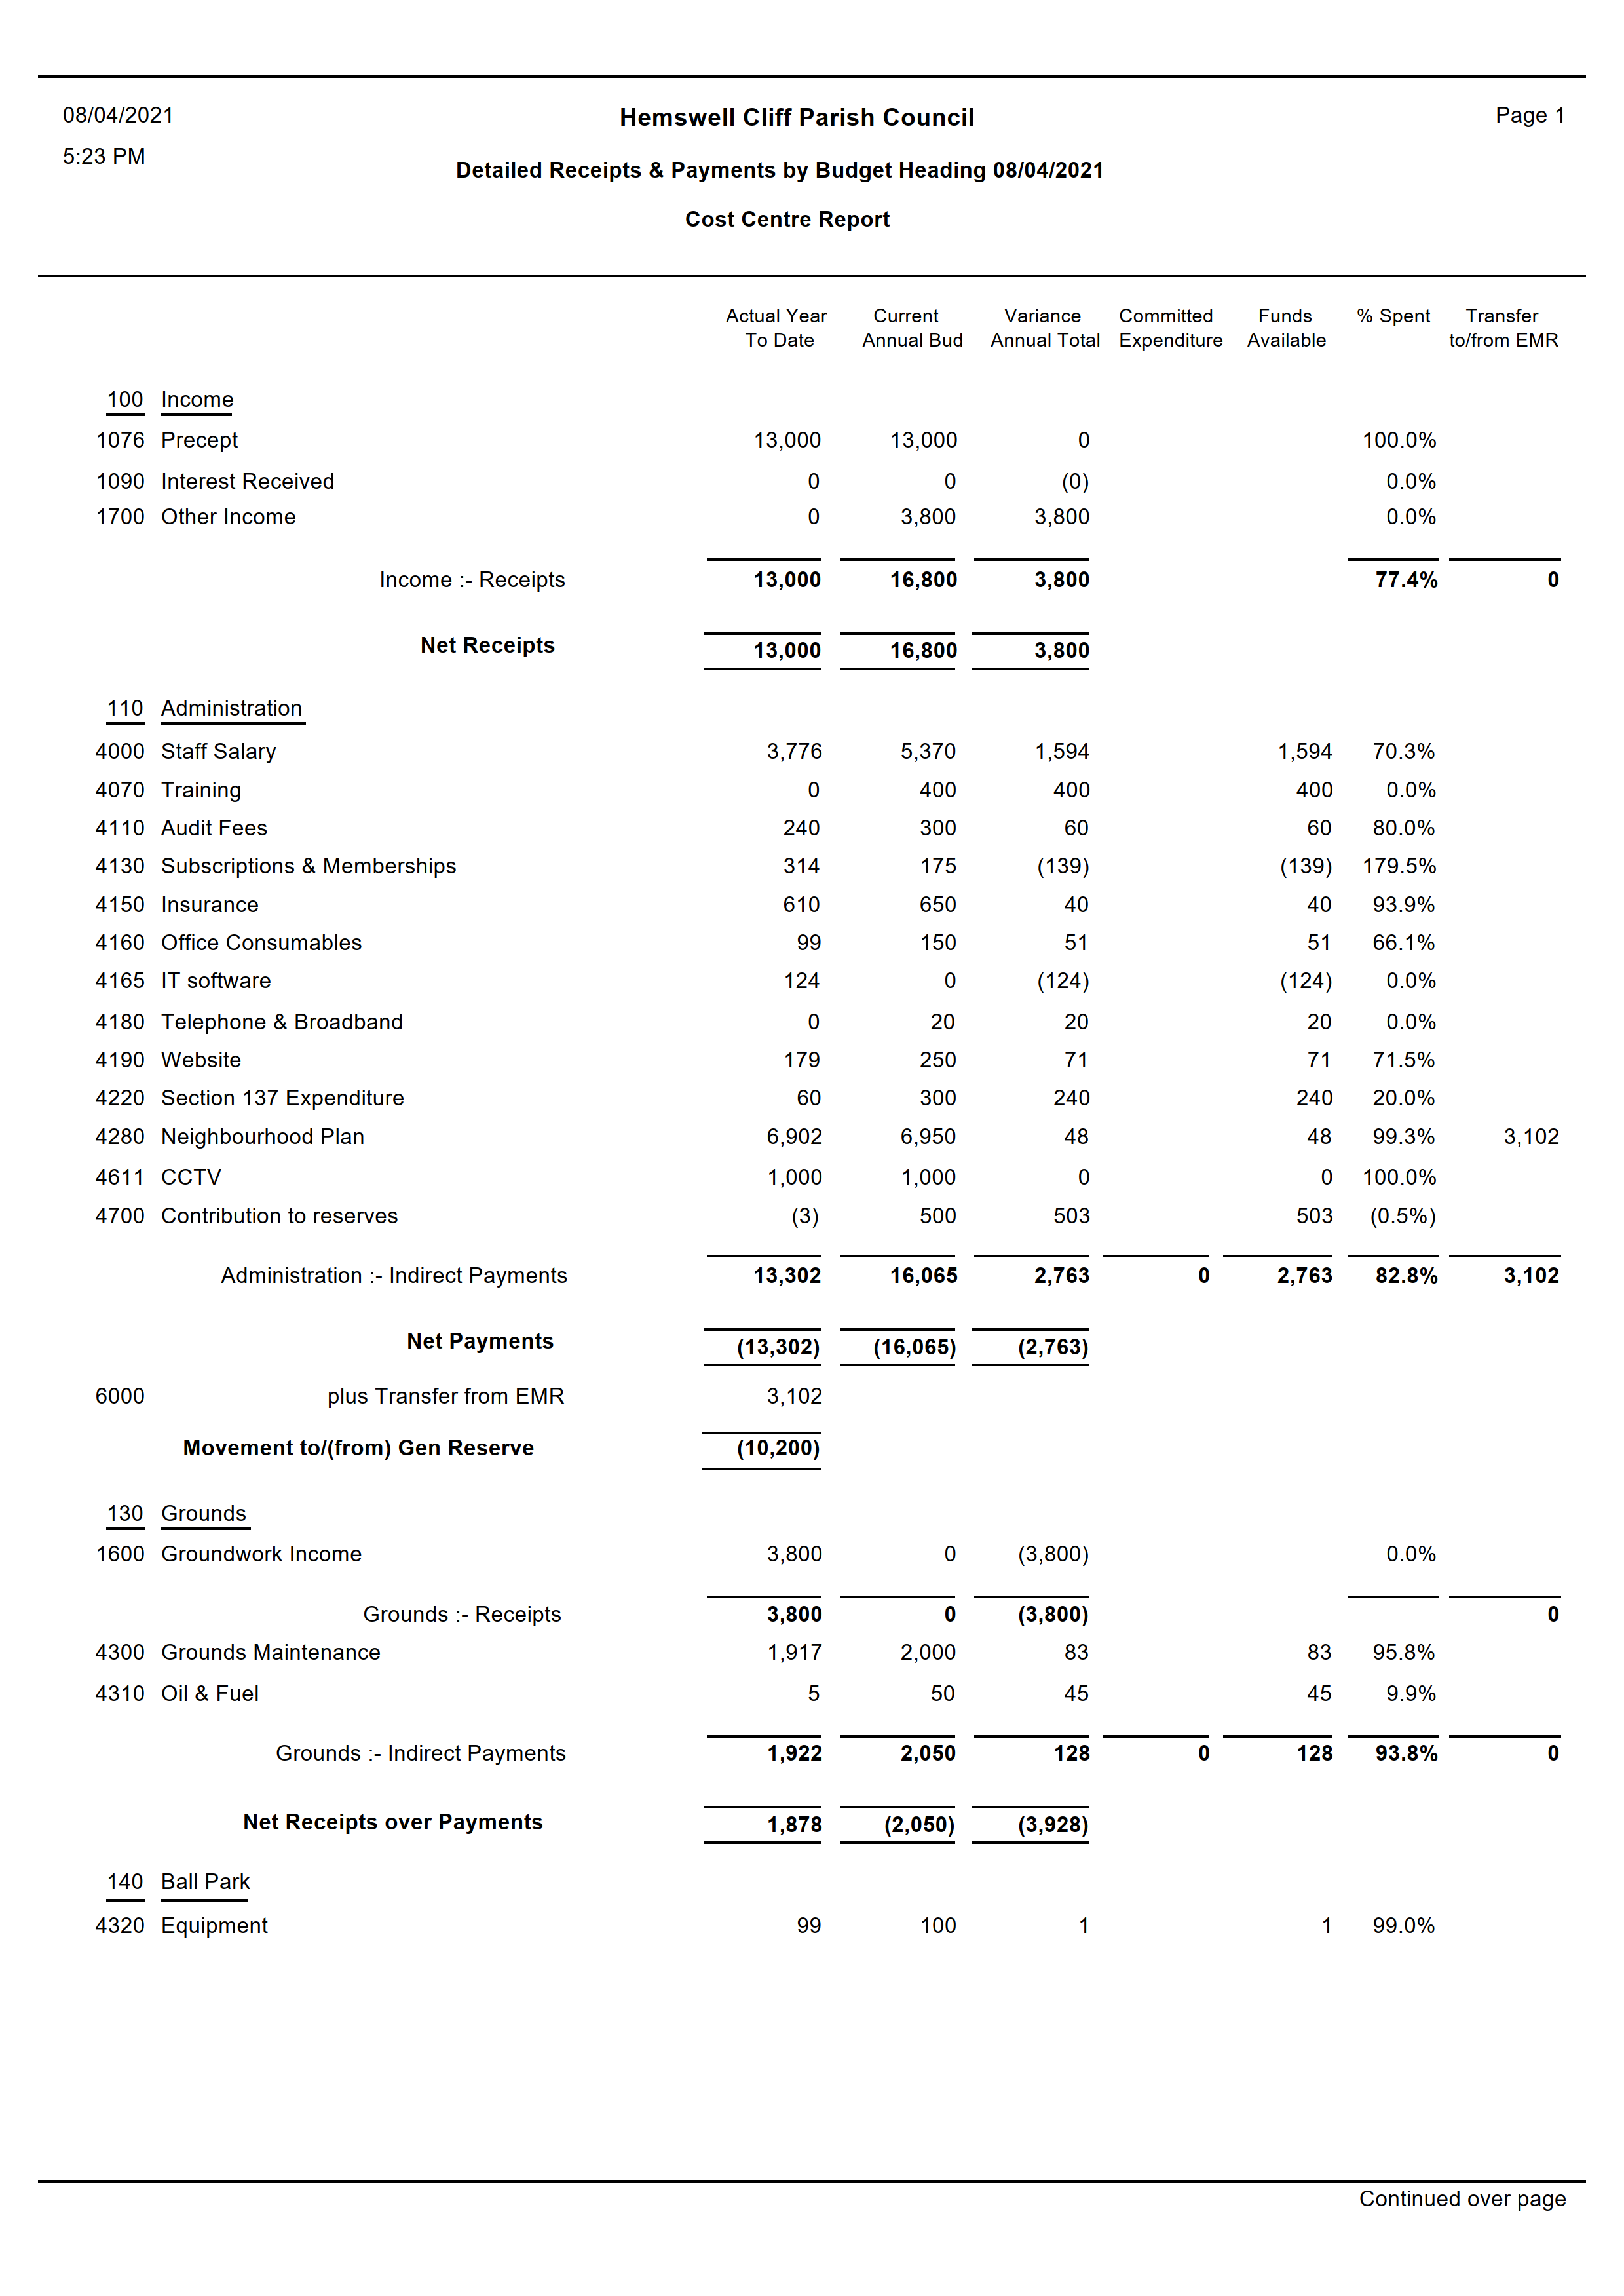 Detailed_Receipts___Payments_by_Budget_Heading_08_04_2021_1.png